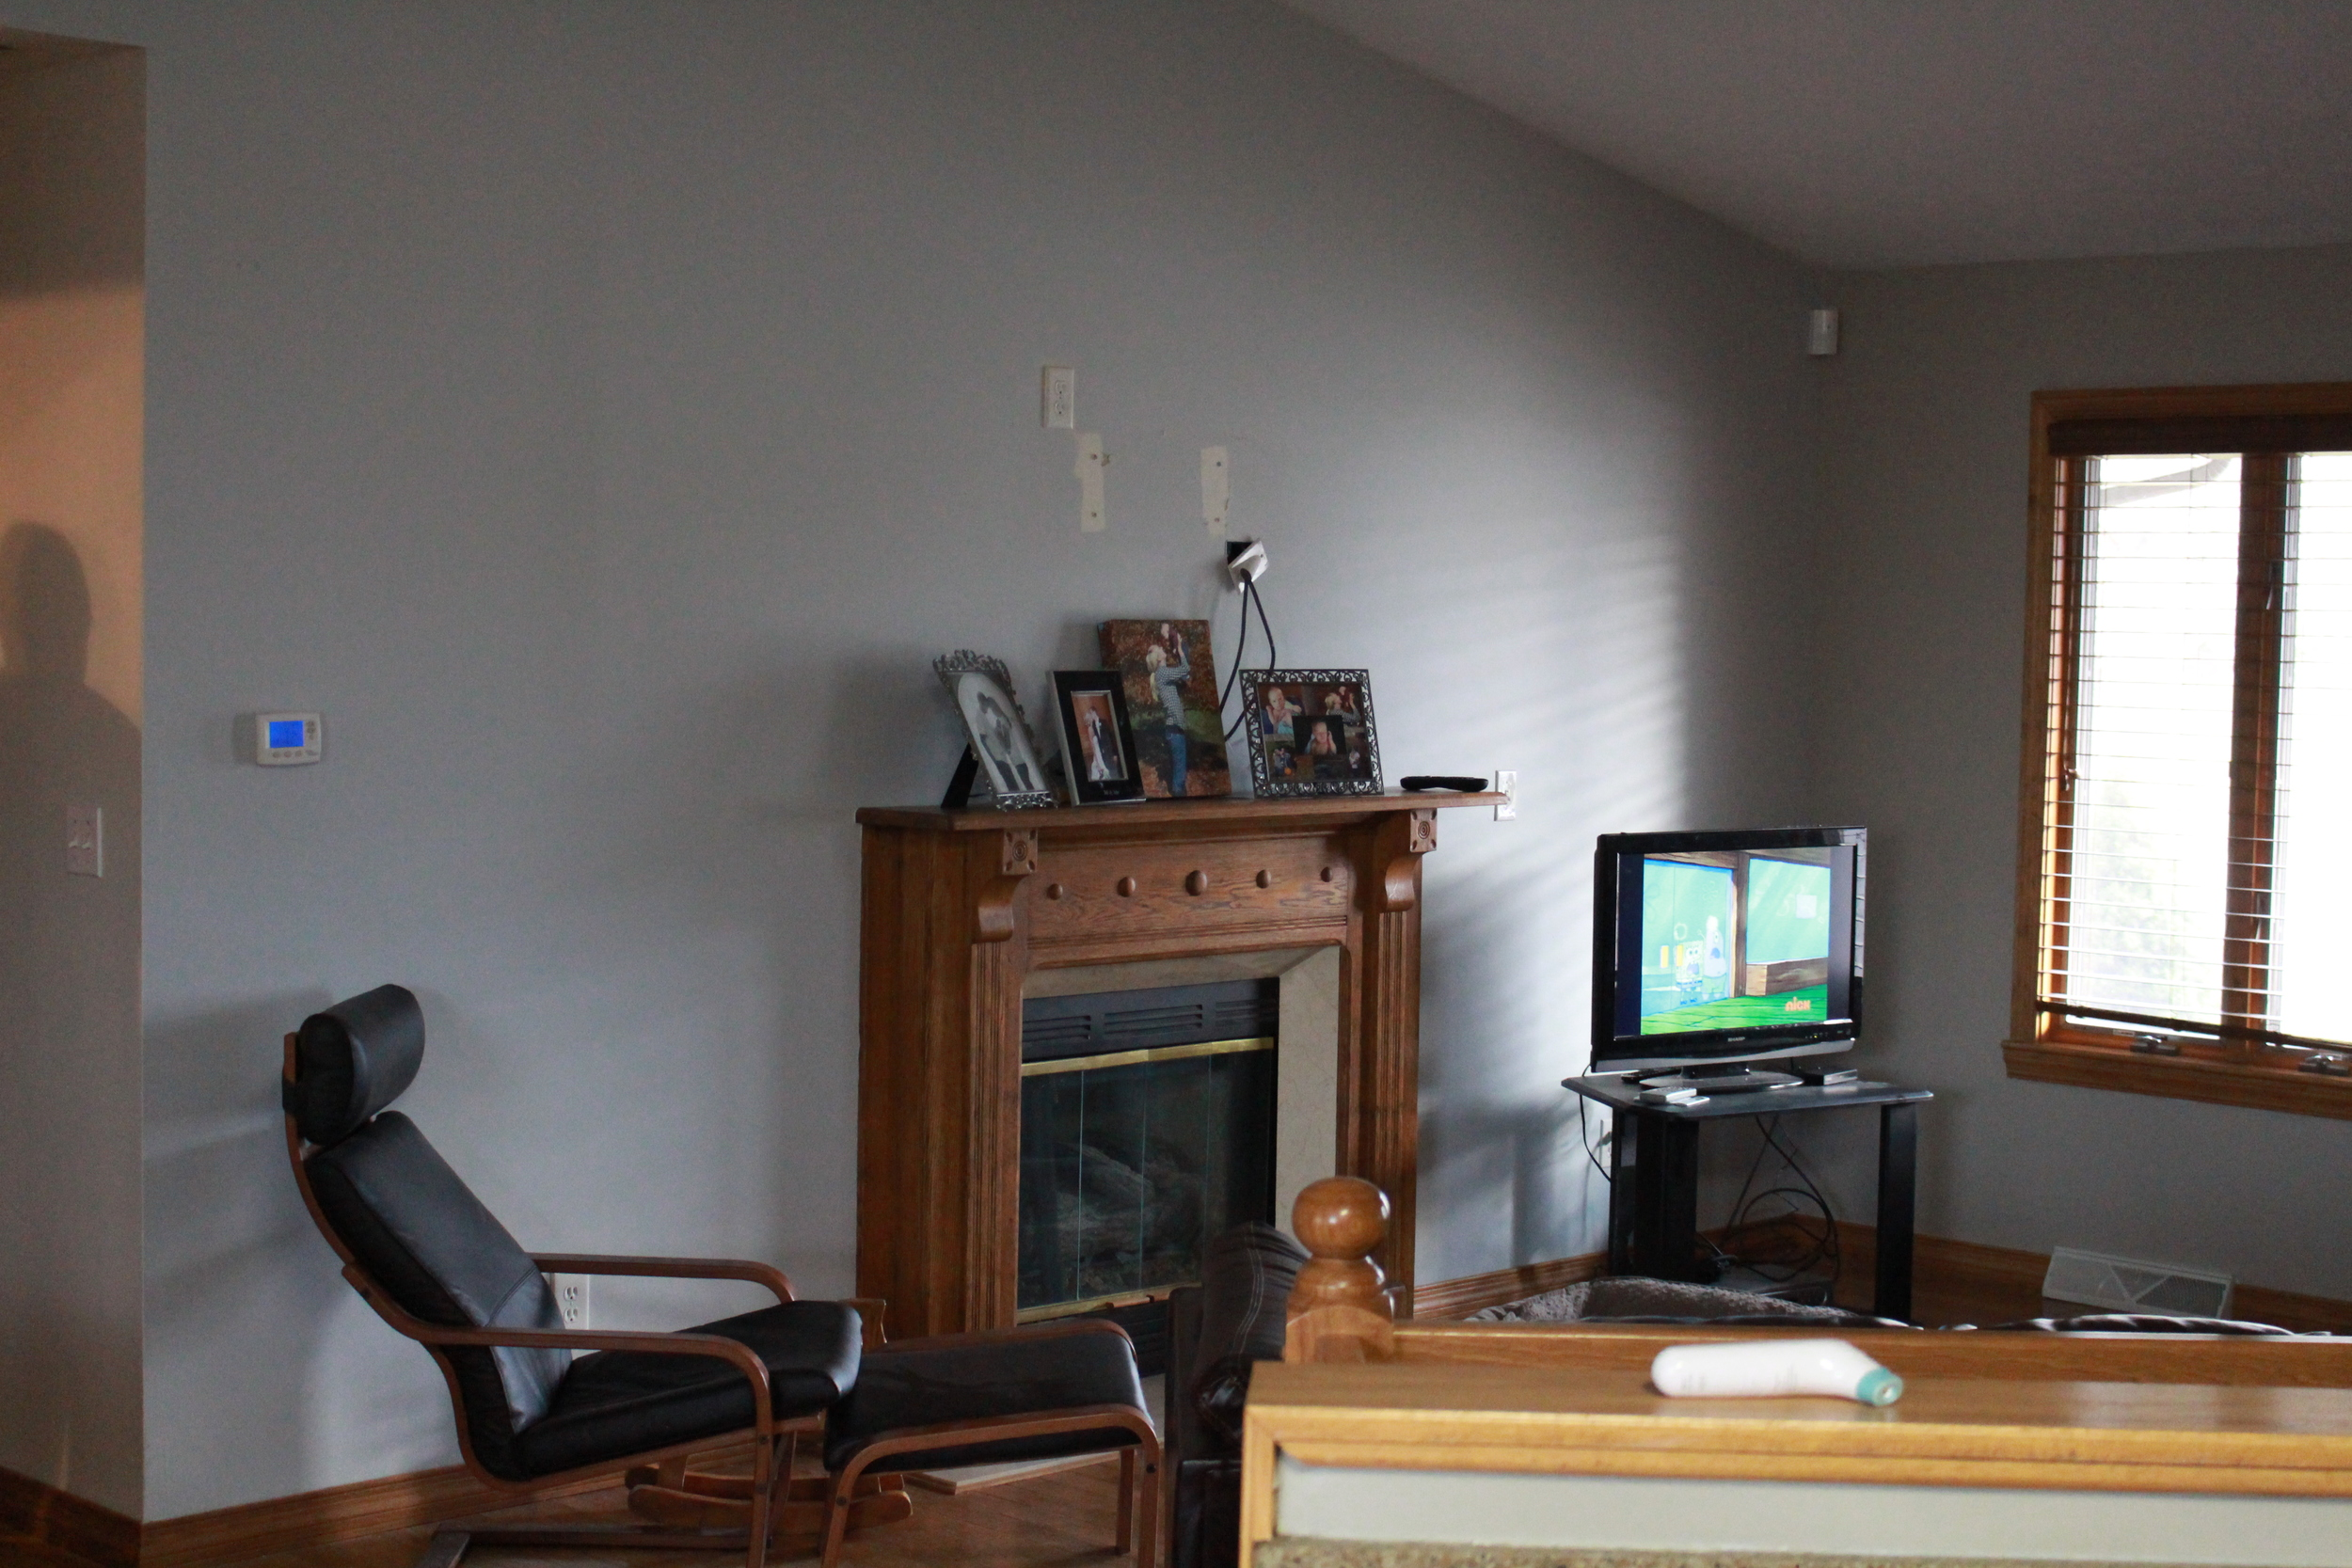 Before: The existing wood mantle was dated and boring. While it matched the trim, it did little to improve the overall appearance of the room.